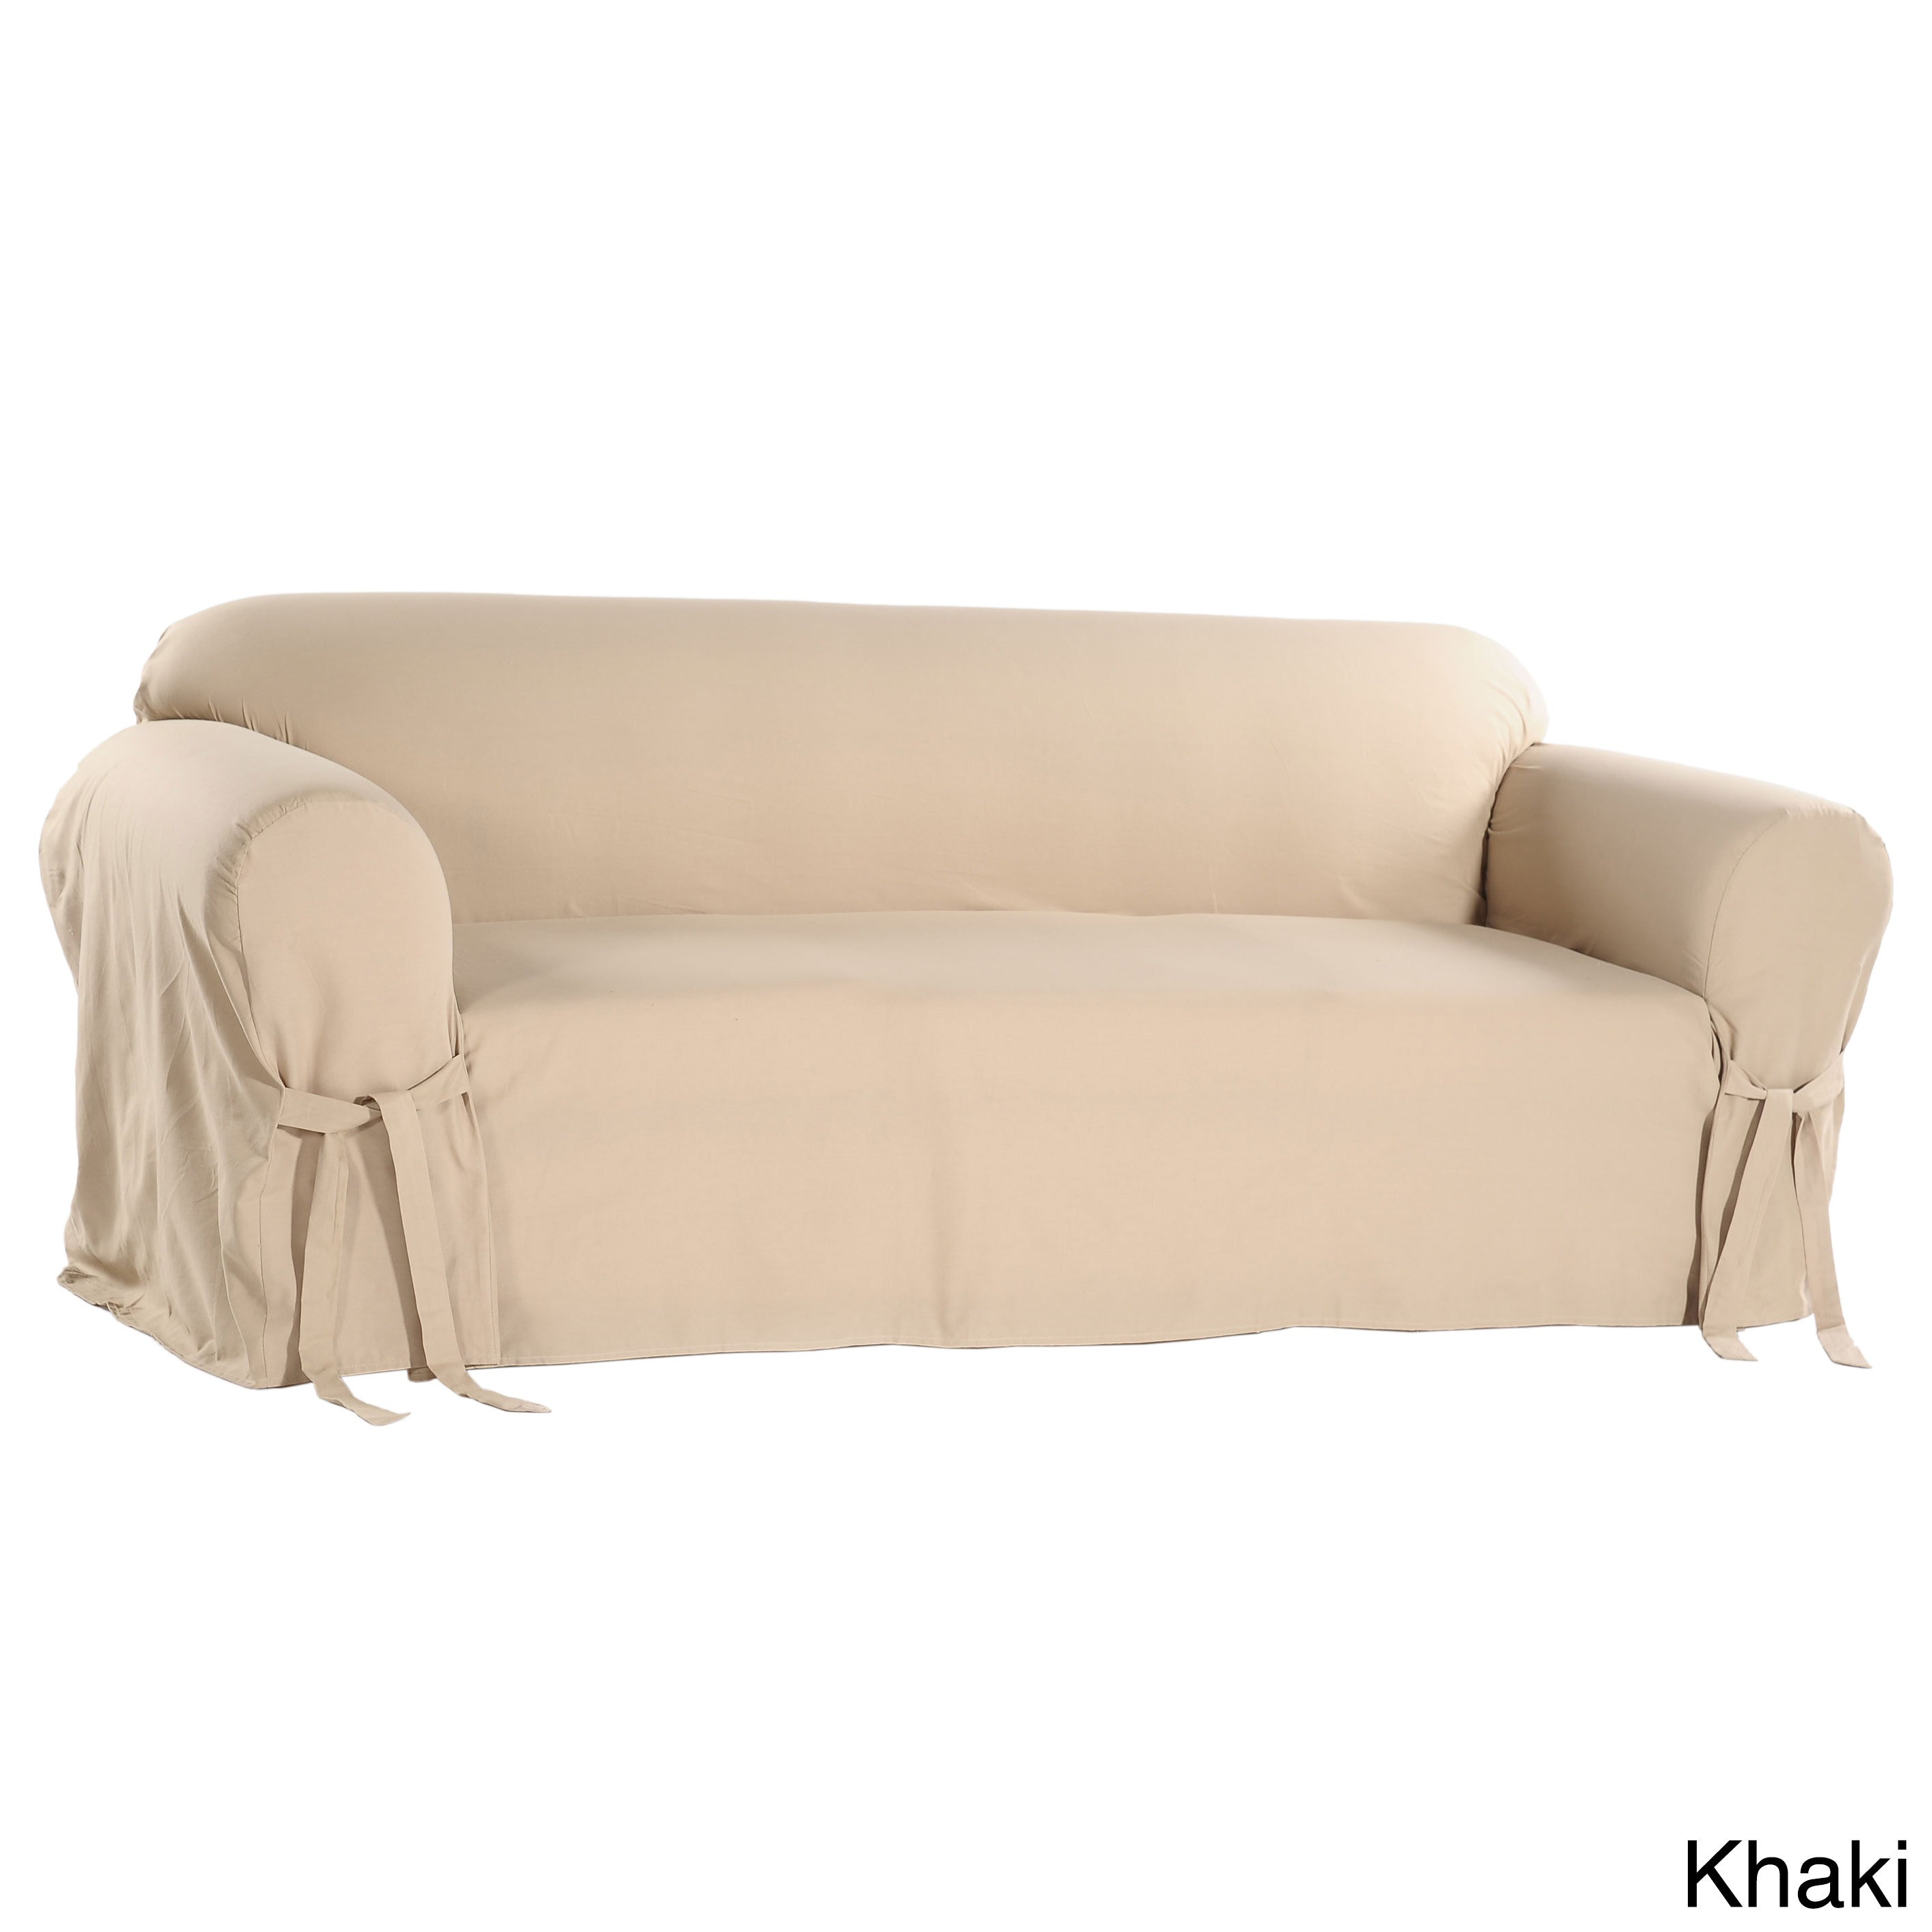 cushion of design cheap slipcover country phenomenal stylet full sofa slipcovers size cheapt t clearancett loveseat